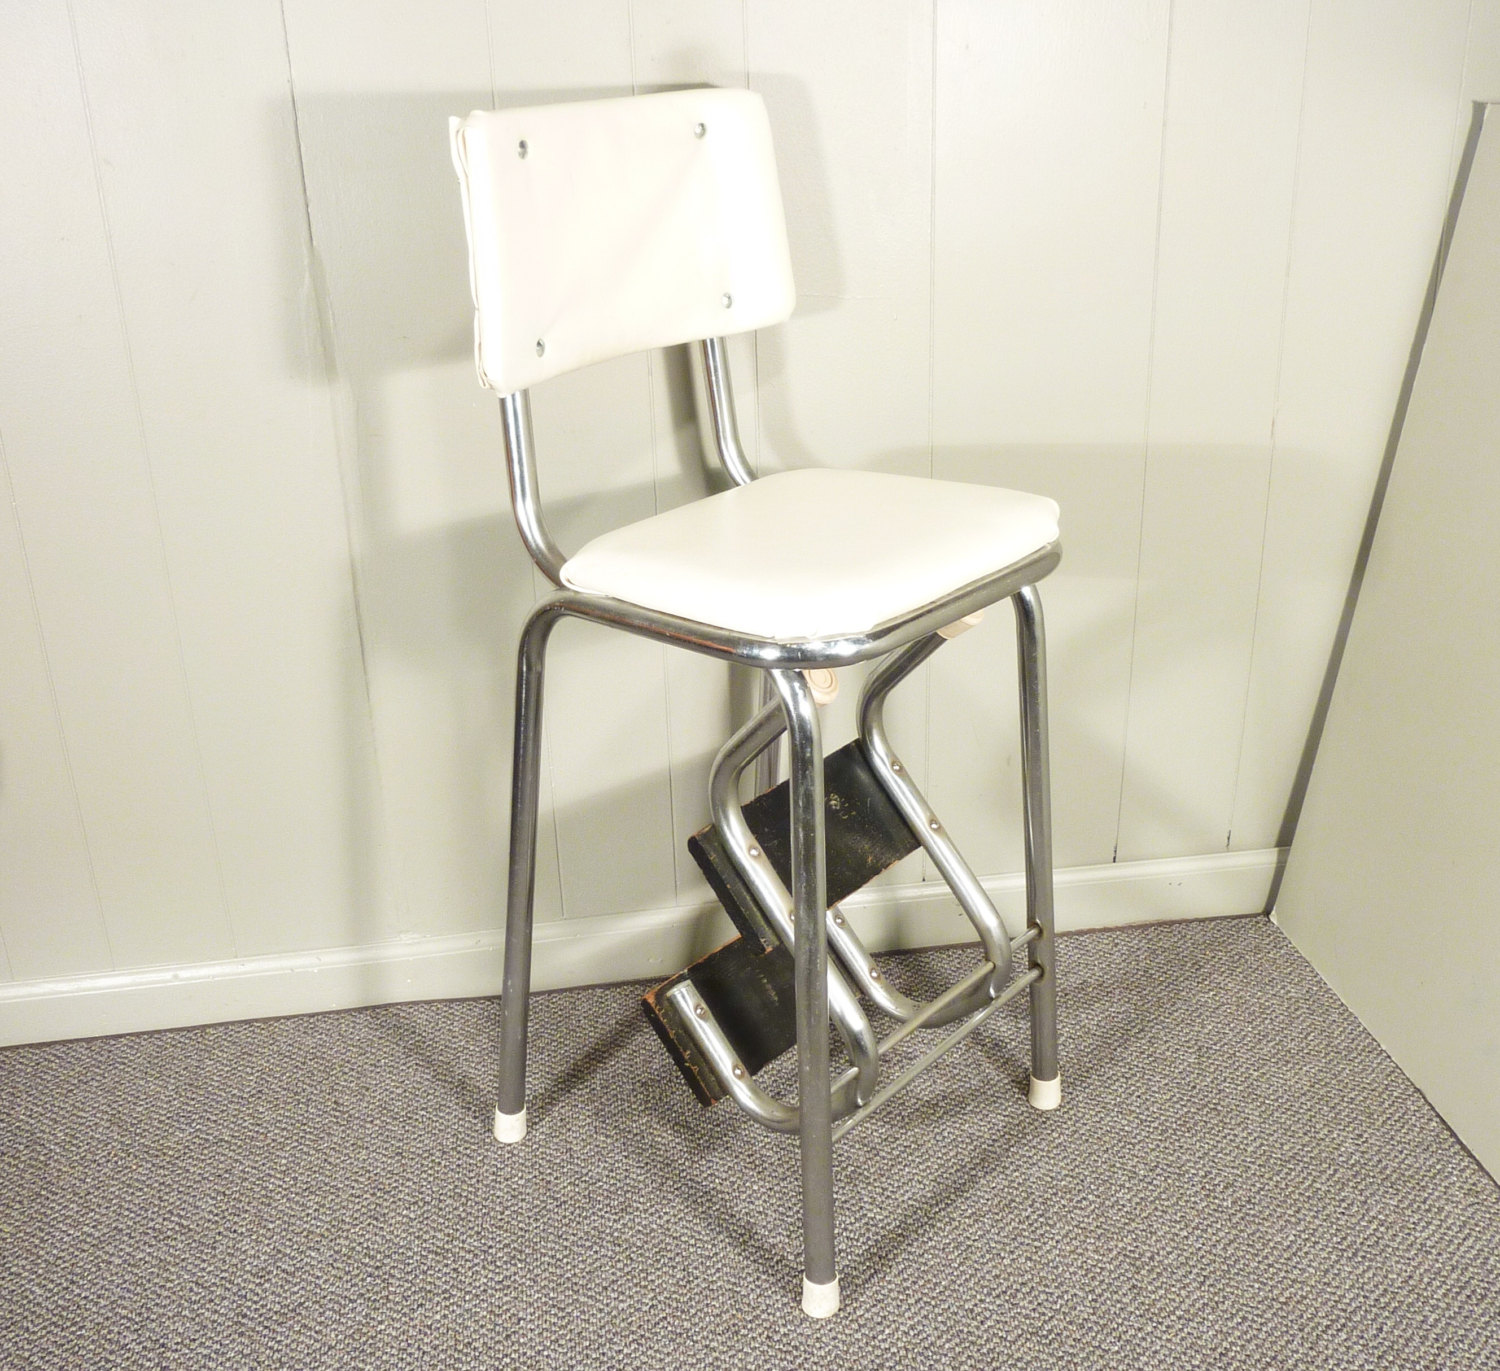 retro kitchen chair with step stool photo - 7